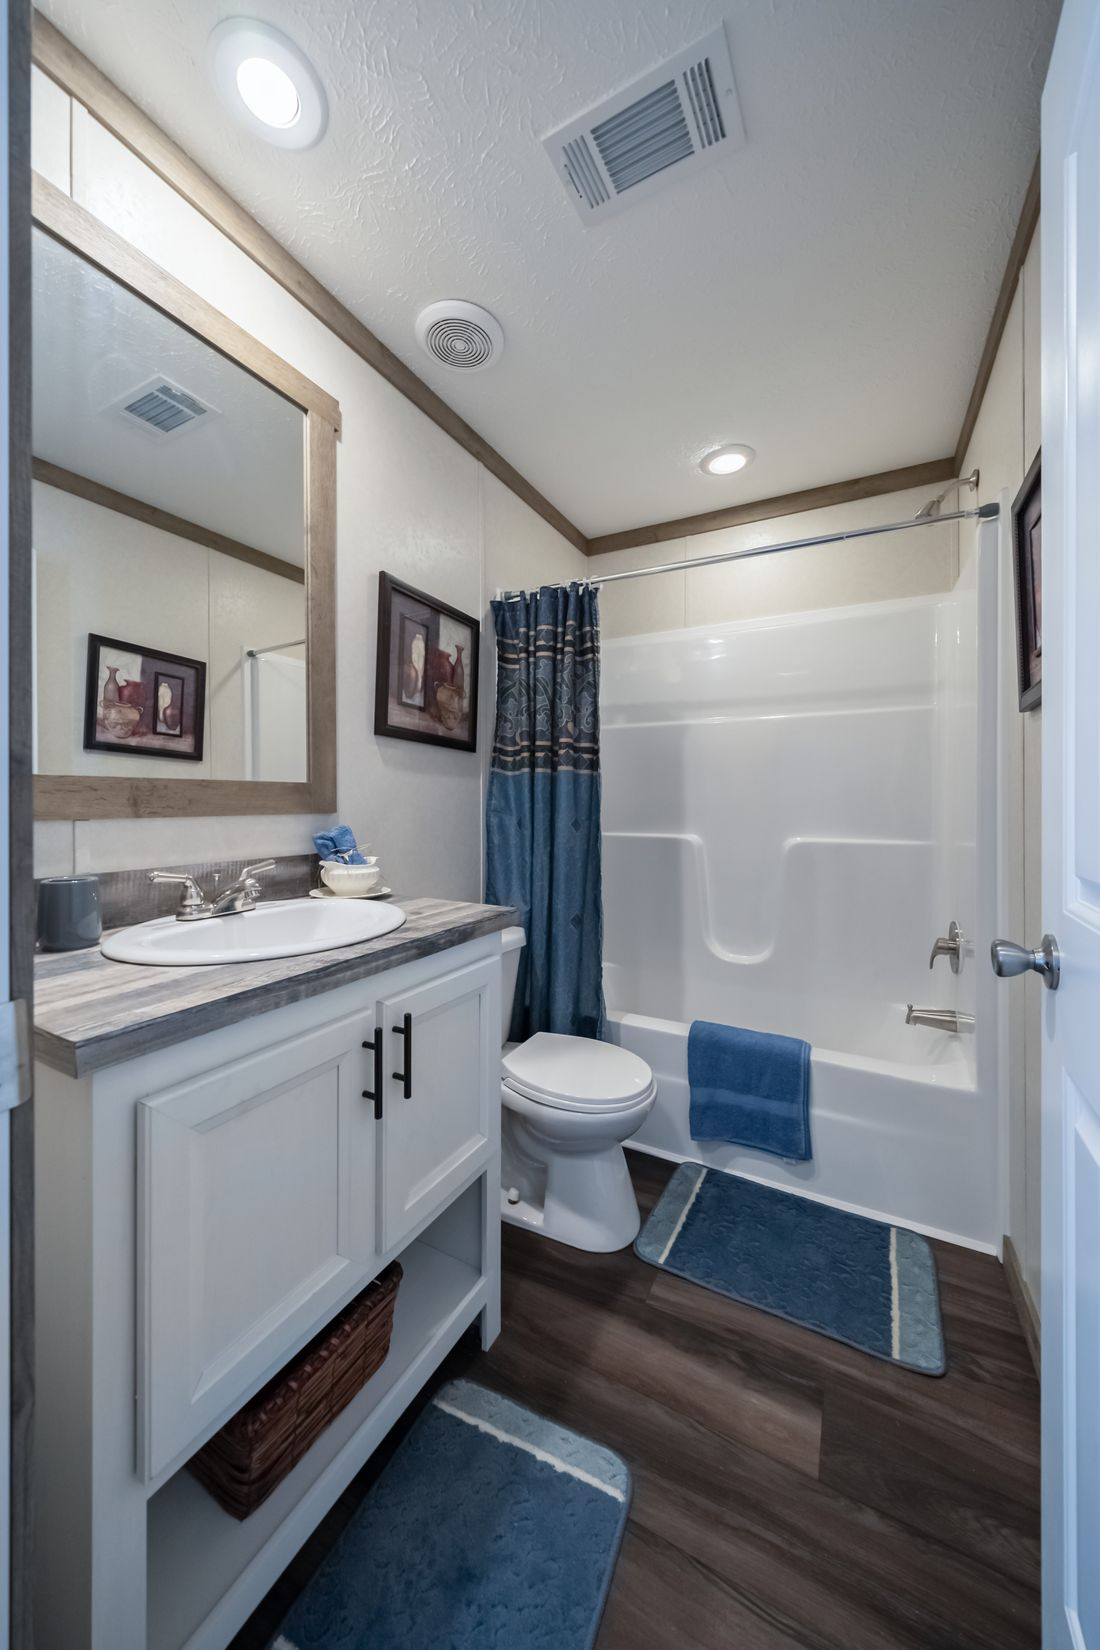 The THE ALBANY Guest Bathroom. This Manufactured Mobile Home features 3 bedrooms and 2 baths.